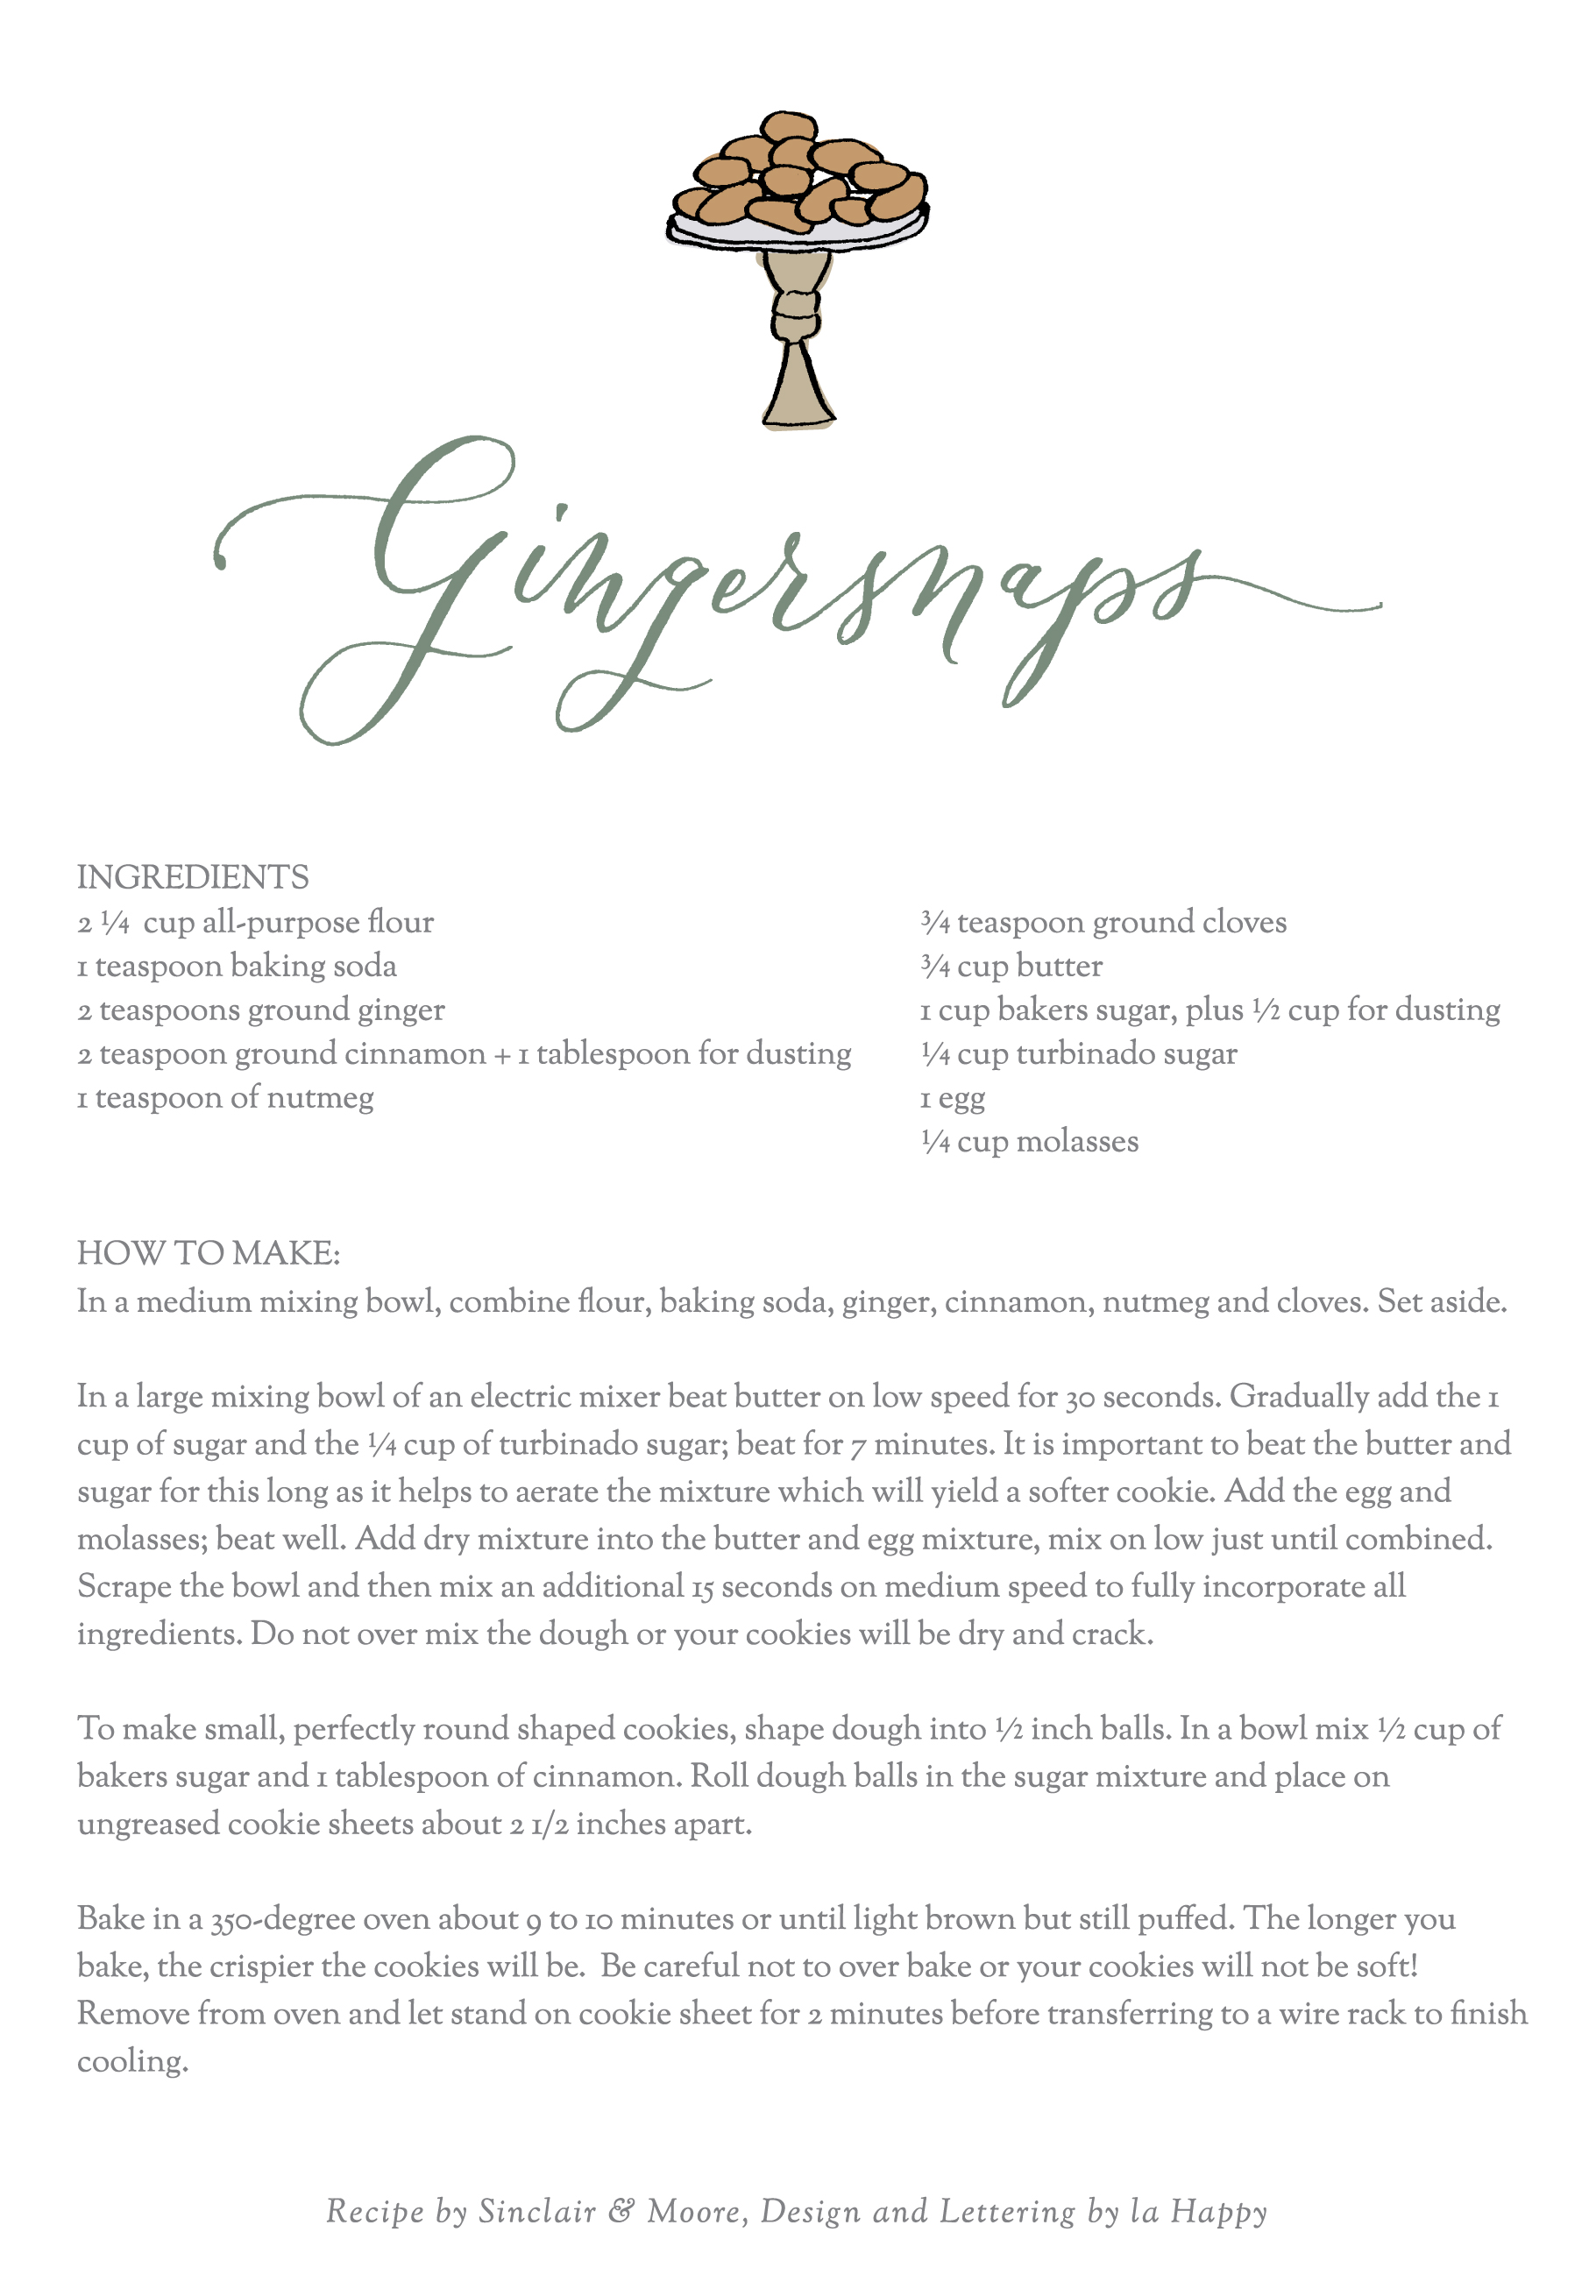 sinclair-and-moore-gingersnap-recipe